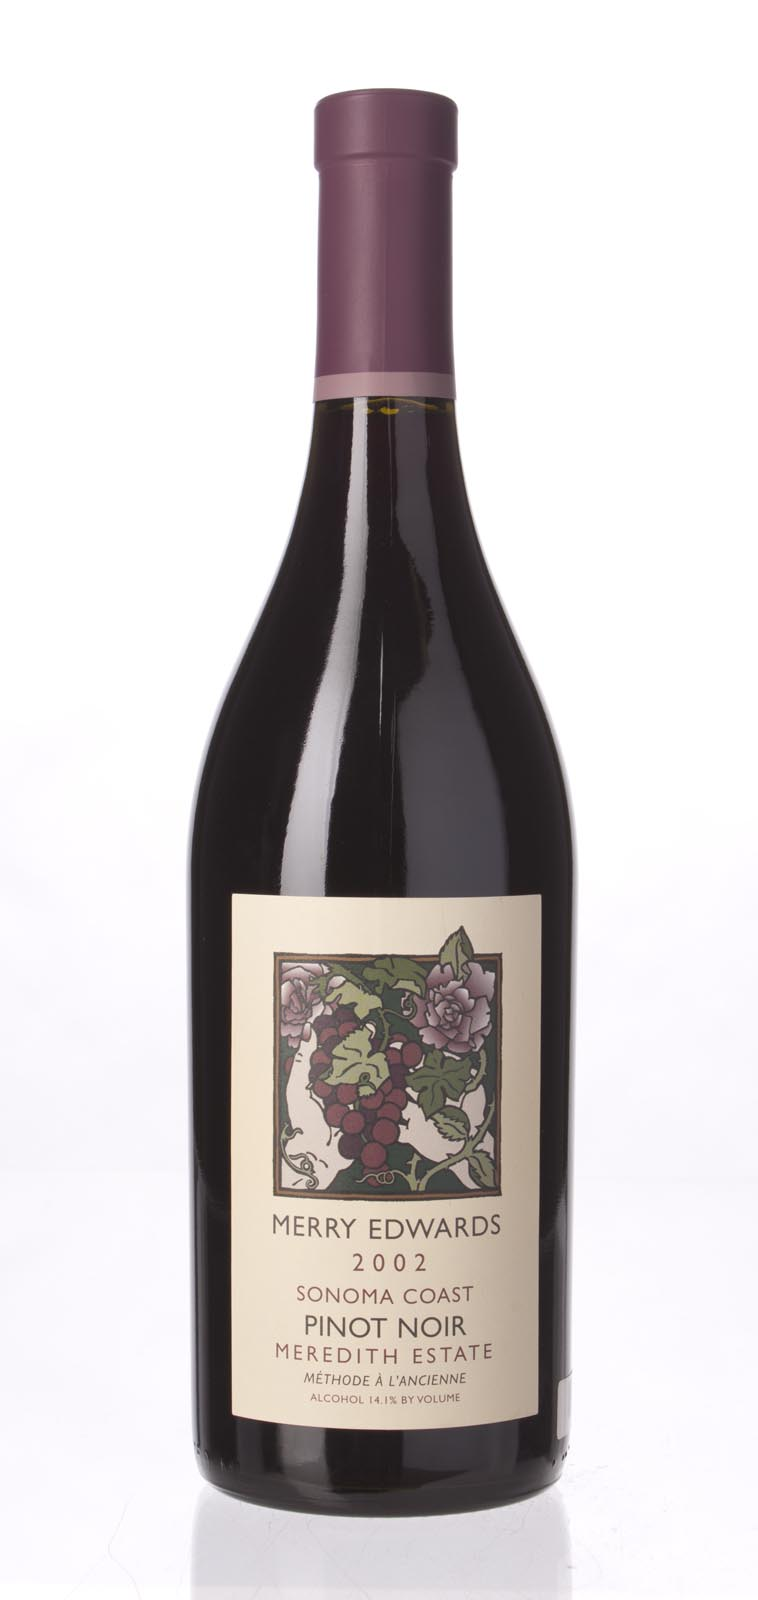 Merry Edwards Pinot Noir Meredith Estate 2002, 750mL () from The BPW - Merchants of rare and fine wines.